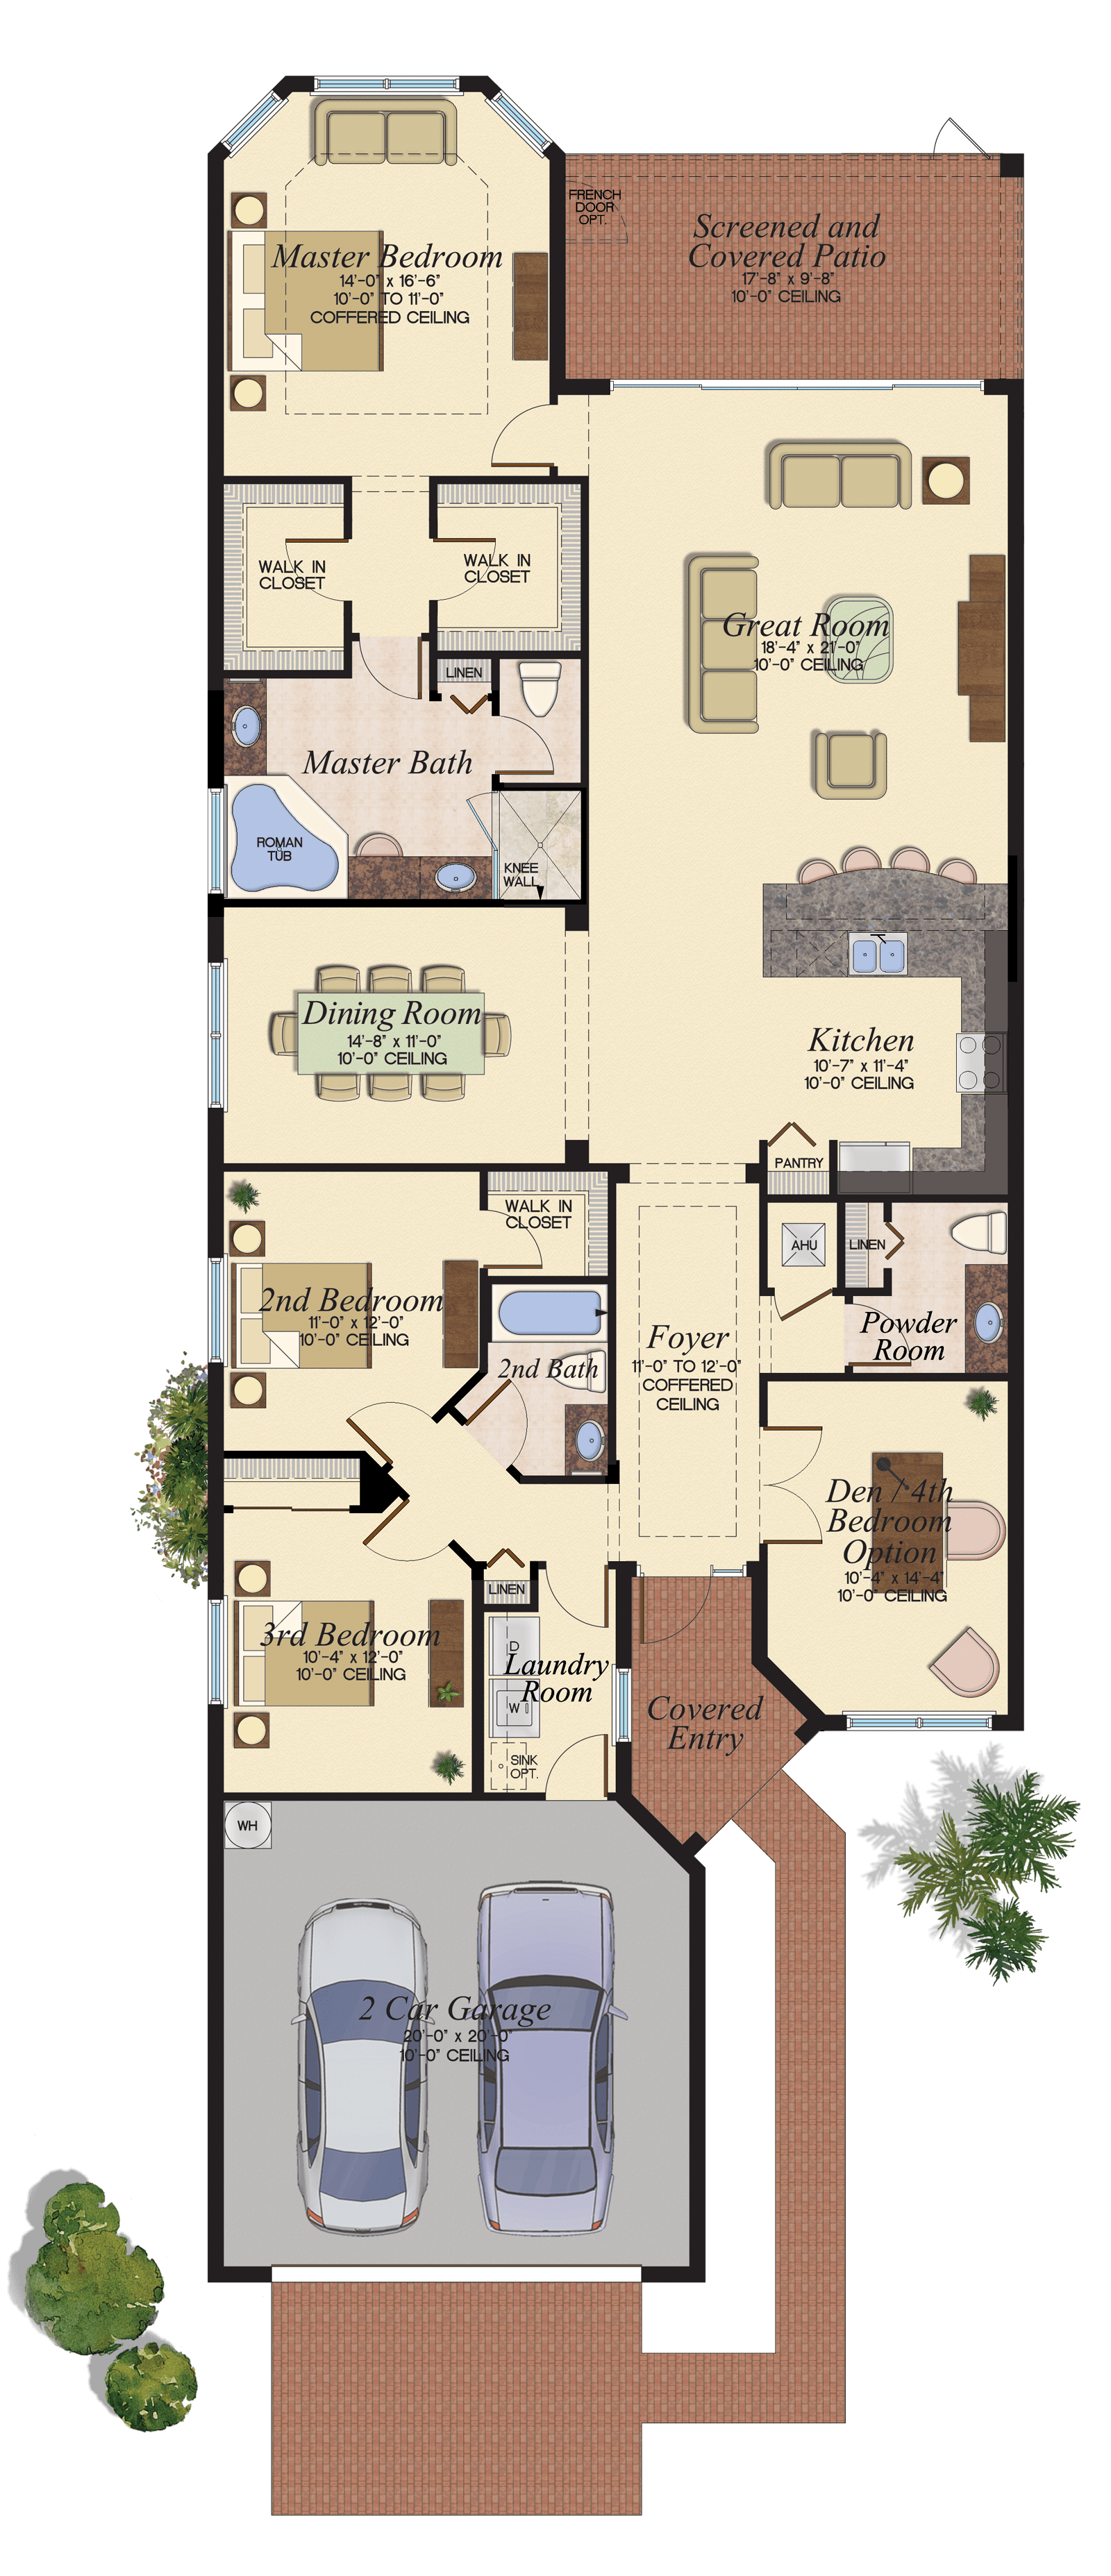 GL Homes | Case in 2019 | House plans, Home, House on modern small house plans, modern bath house plans, modern house house plans, modern house plans 1 bedroom, unique modern house plans, modern apartment house plans, contemporary house plans, modern small one bedroom plans, post modern house plans, modern 3 bedroom house plans, modern tudor house plans, modern lakefront house plans, small house floor plans, modern duplex house plans india, modern storage plans, modern basement house plans, modern ocean front house plans, 2 bedroom apartment plans,